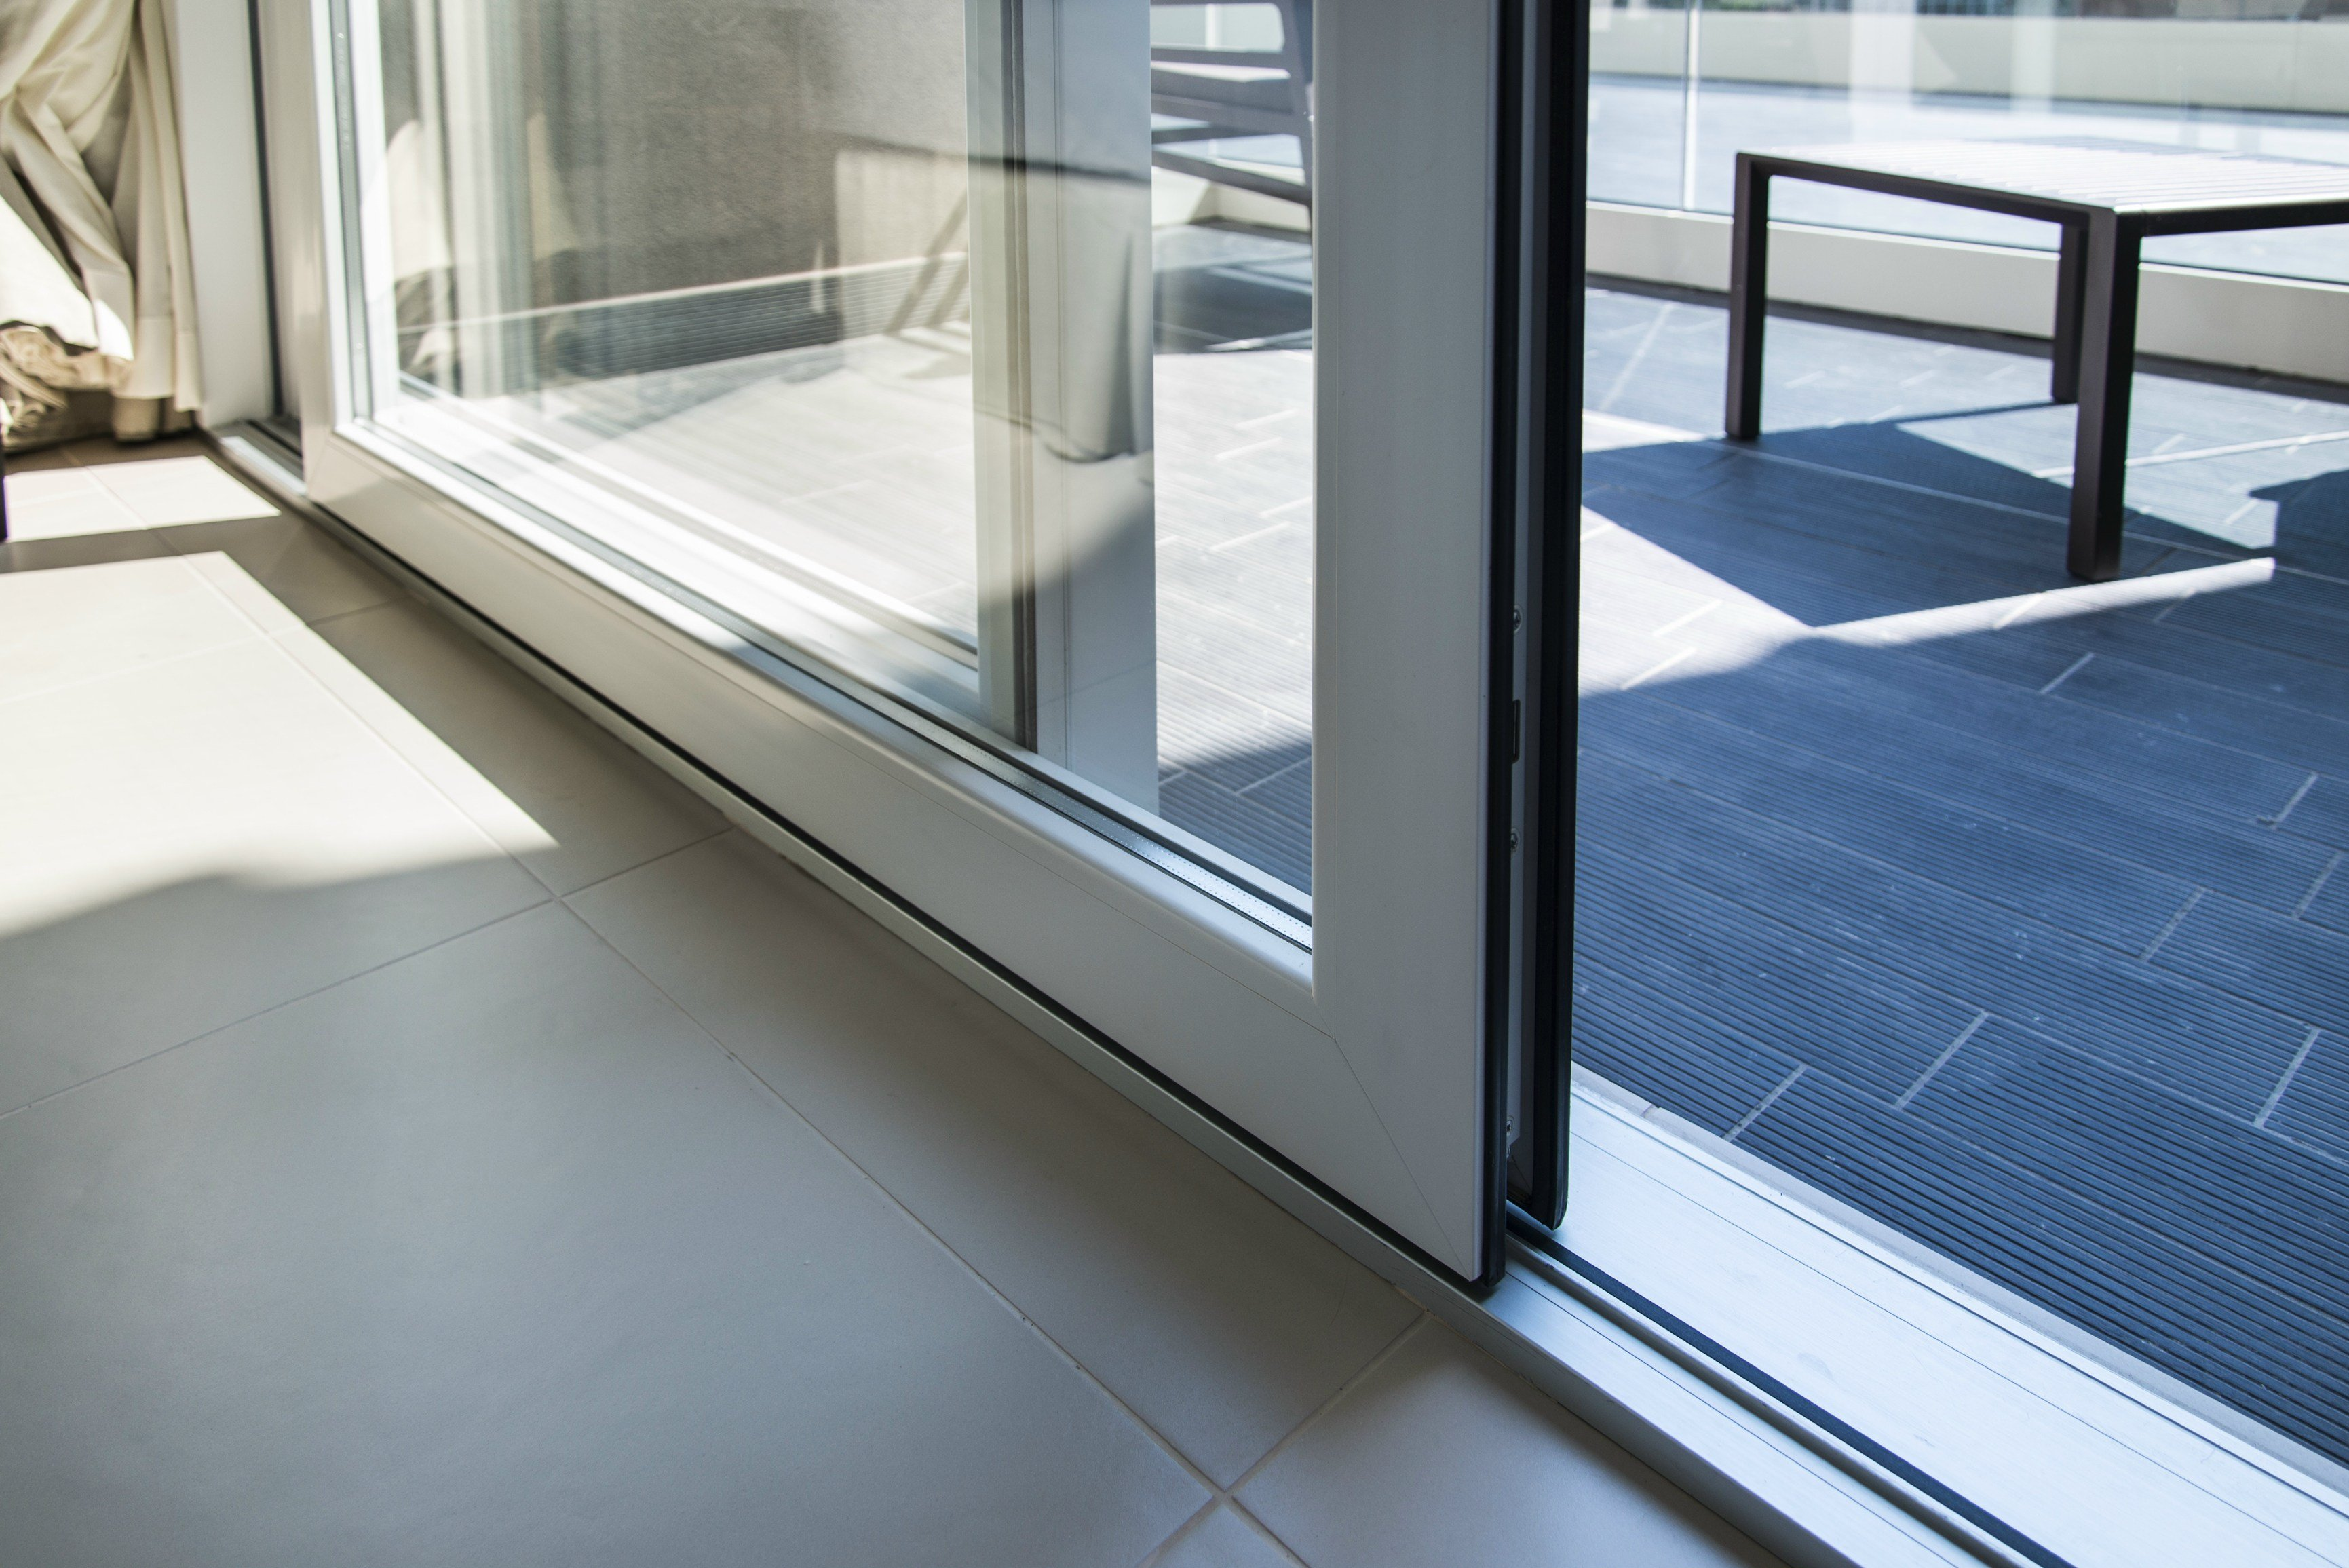 Hs 76 Lift And Slide Window By Deceuninck Italia